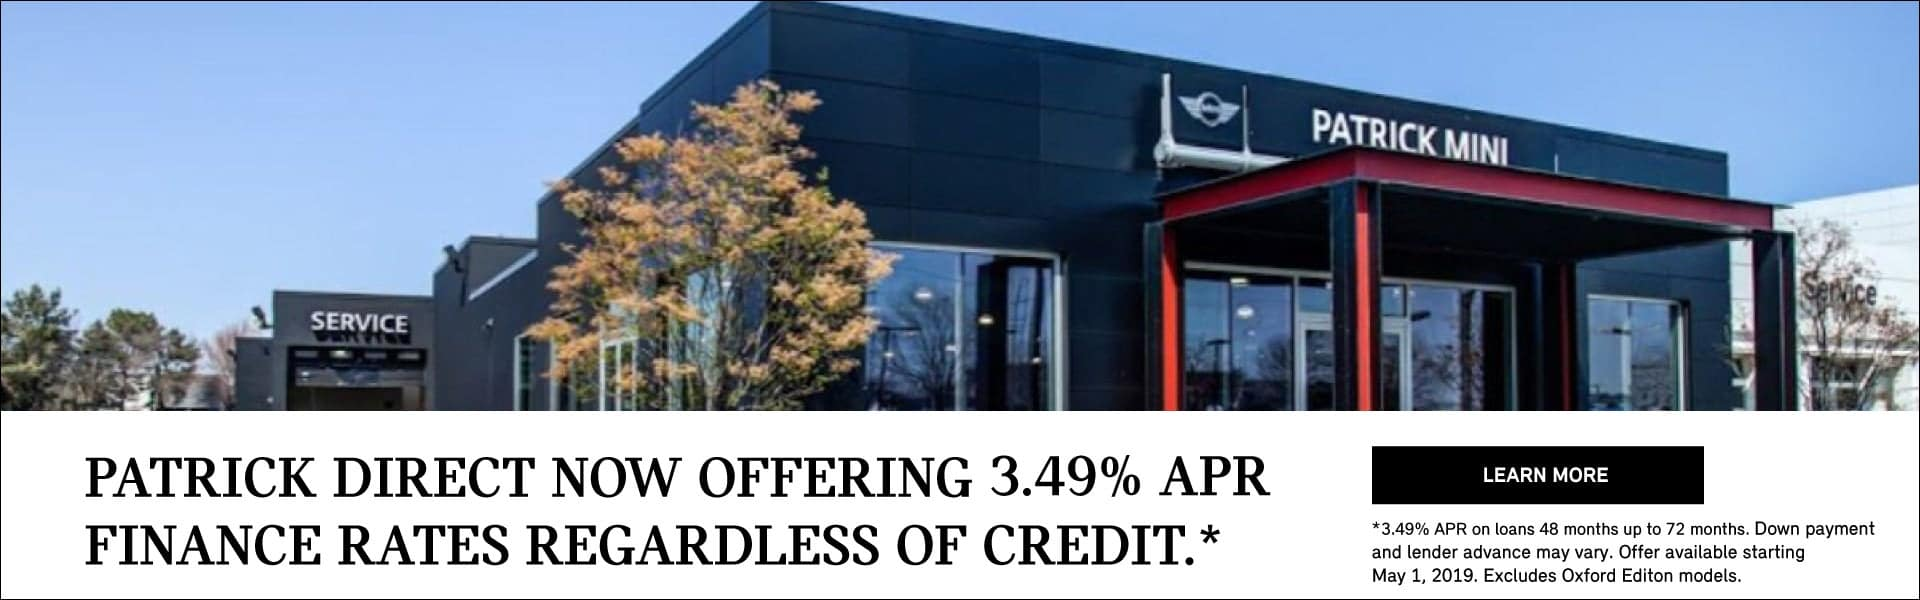 Patrick Direct 3.9% APR Offer